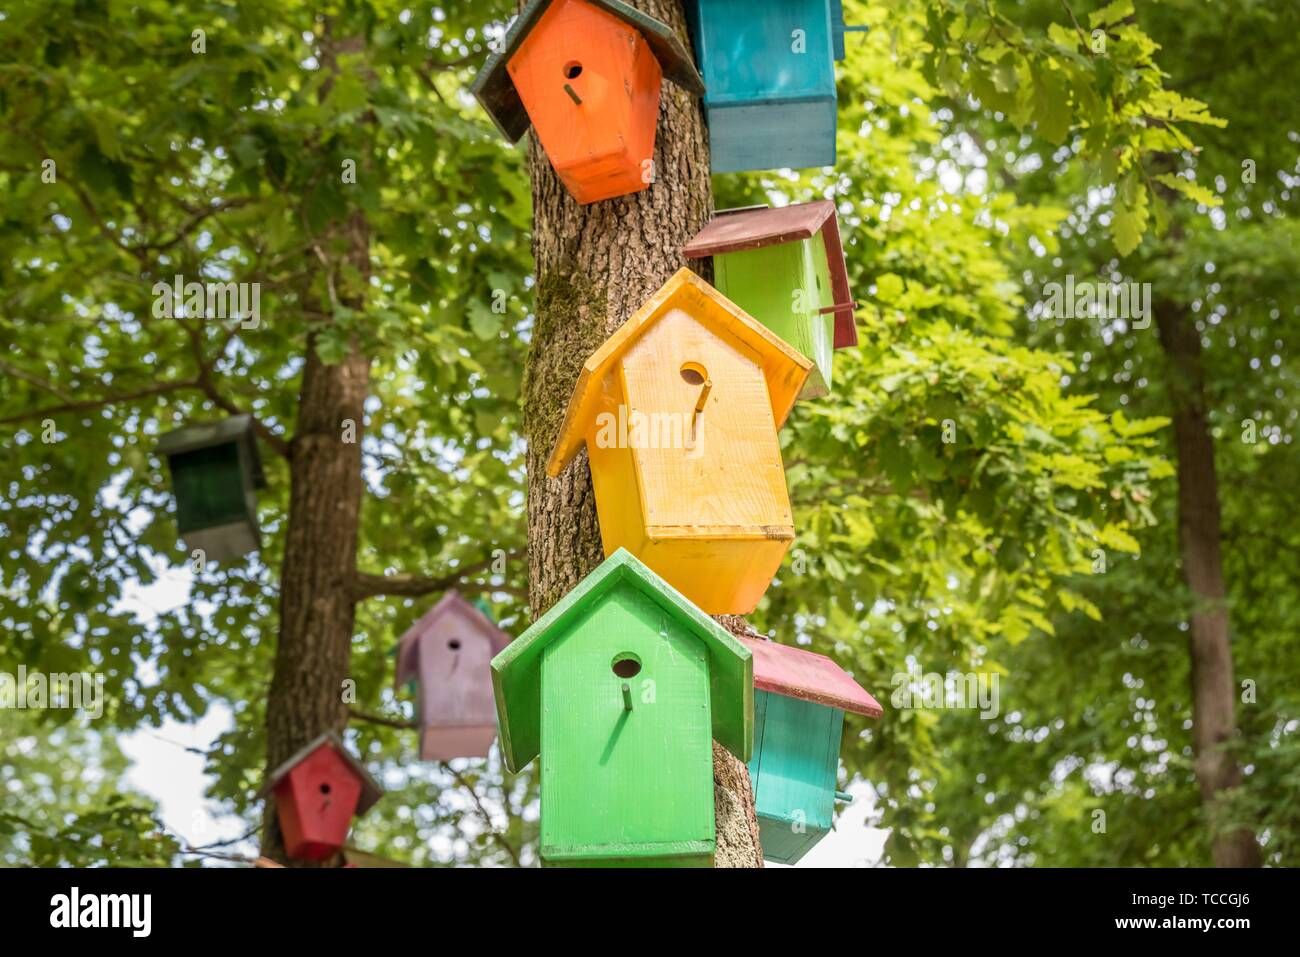 Manmade colorful nests hang on tree. Handmade wooden birdhouse on a tree for bird protection. Spring scenery with bird nesting box on a tree. - Stock Image